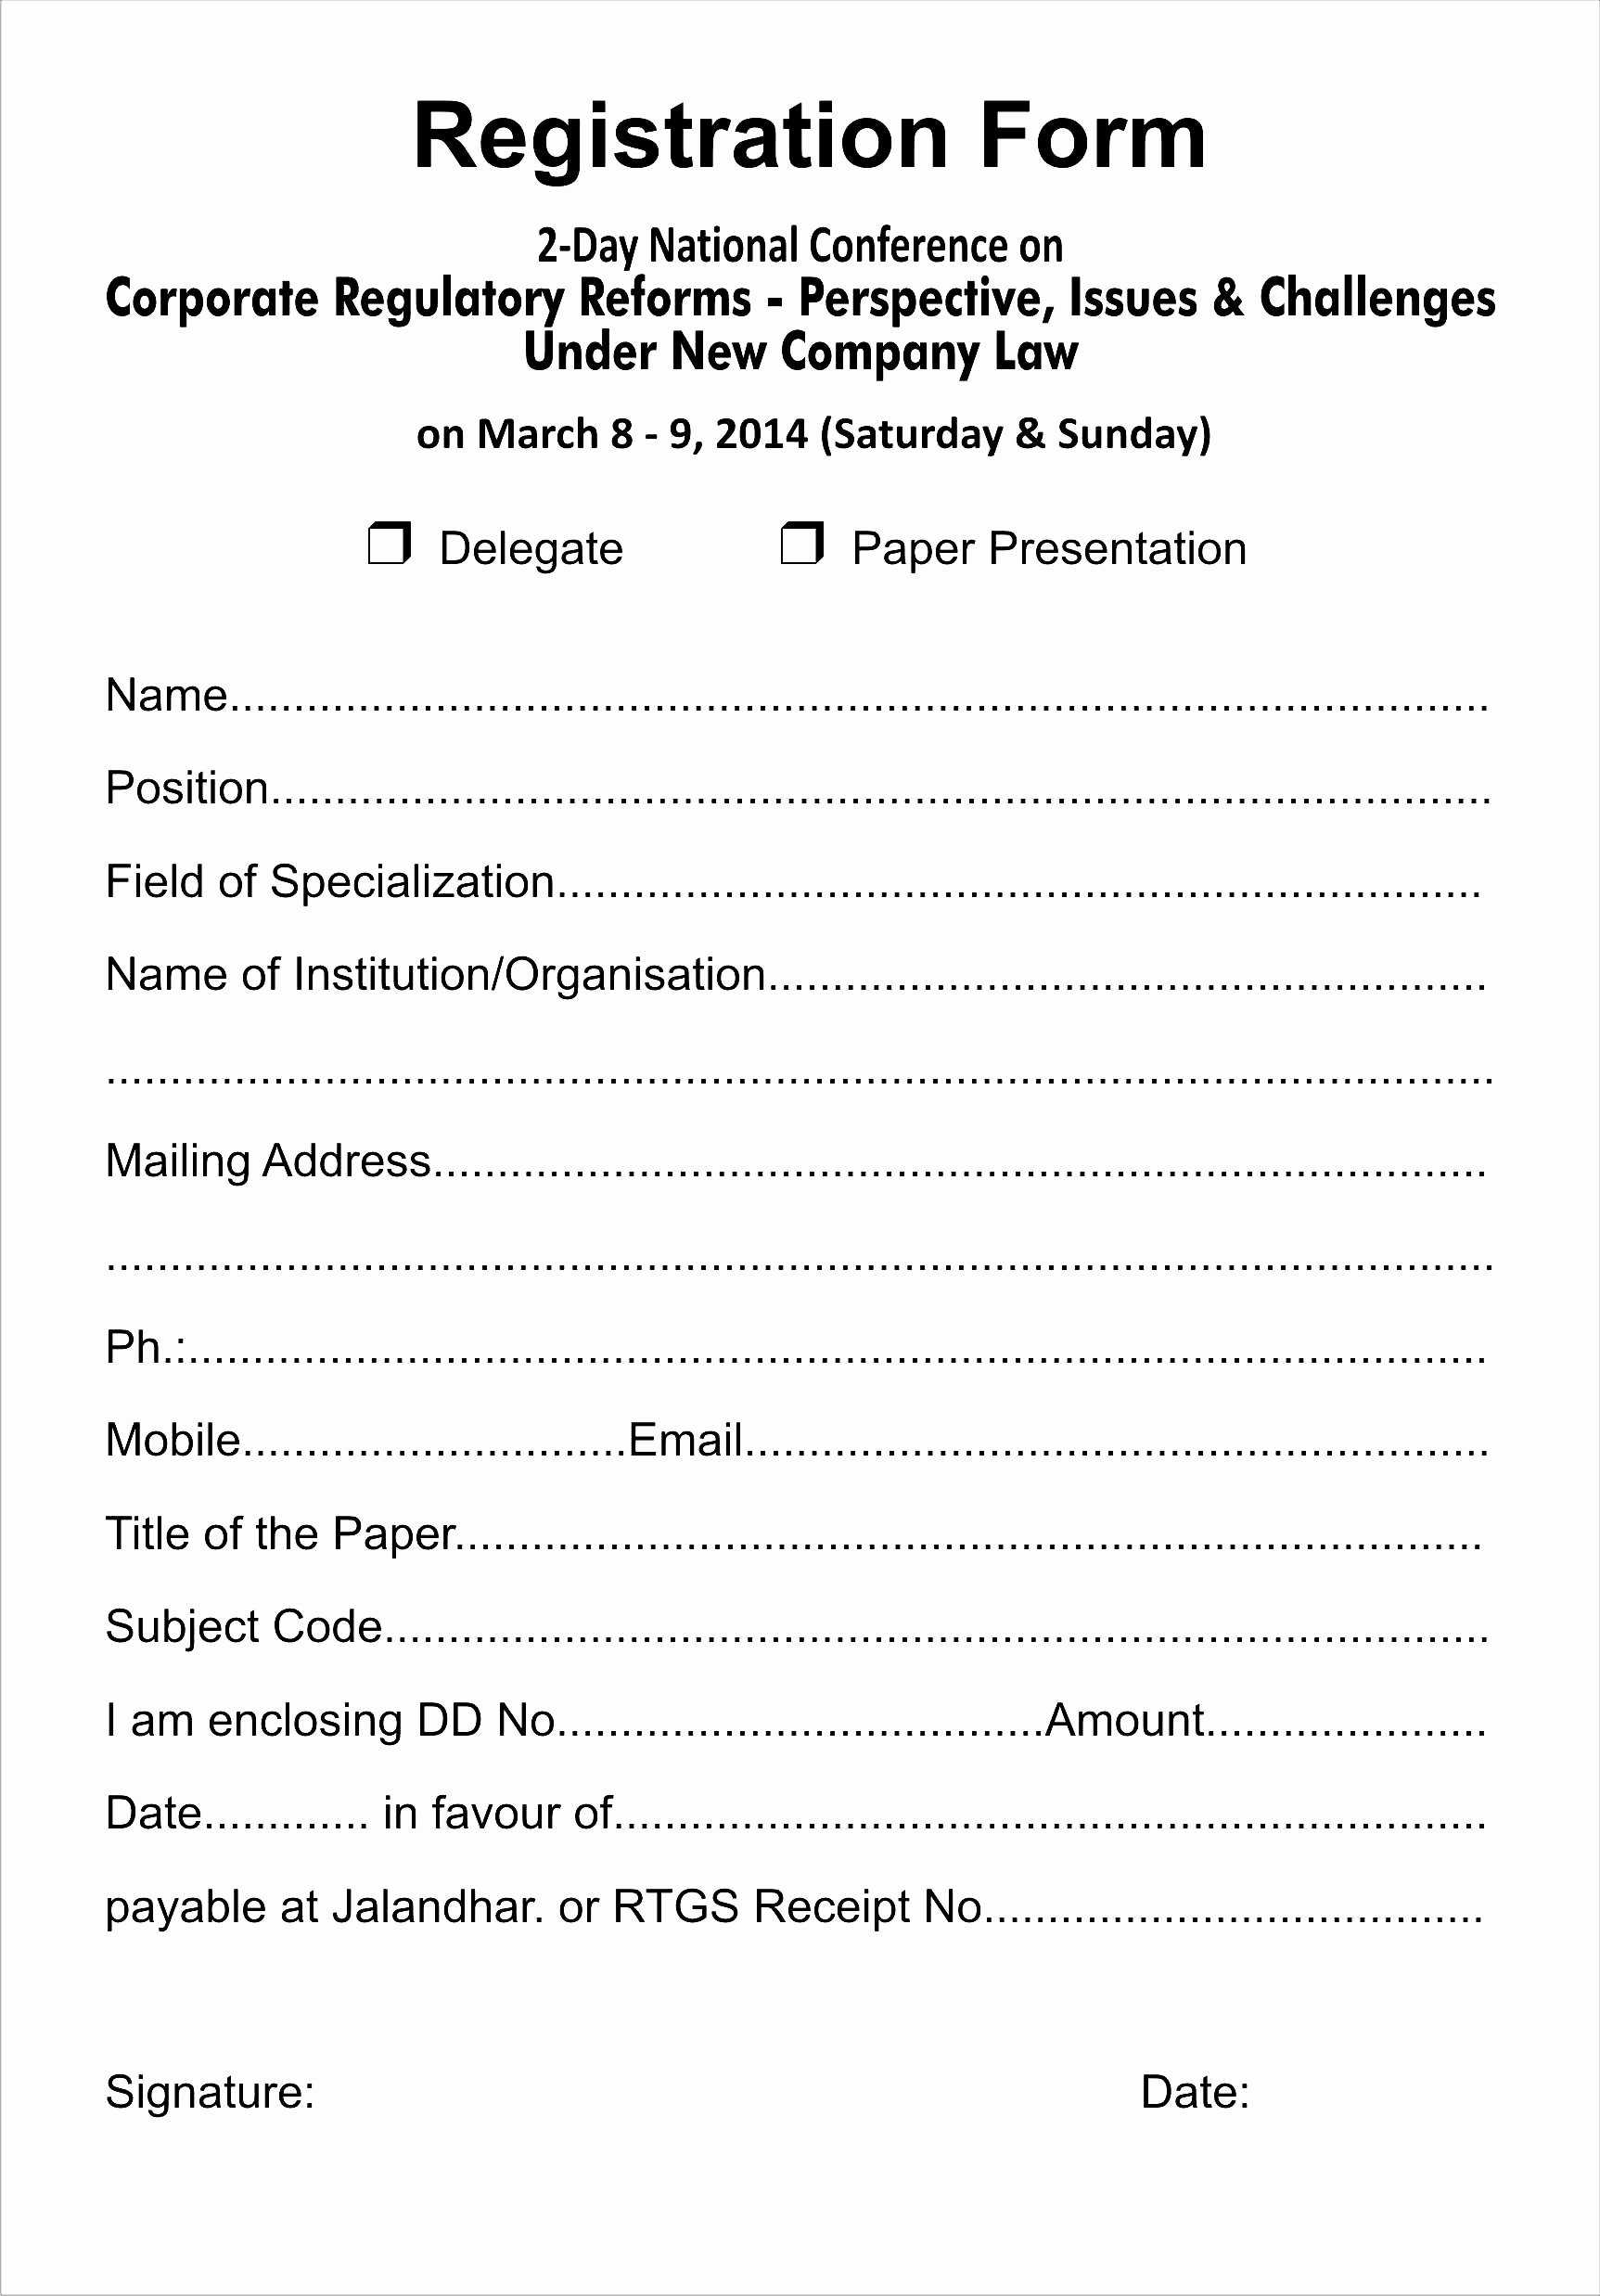 Registration form Template Word Beautiful event Registration form Template Word Bamboodownunder